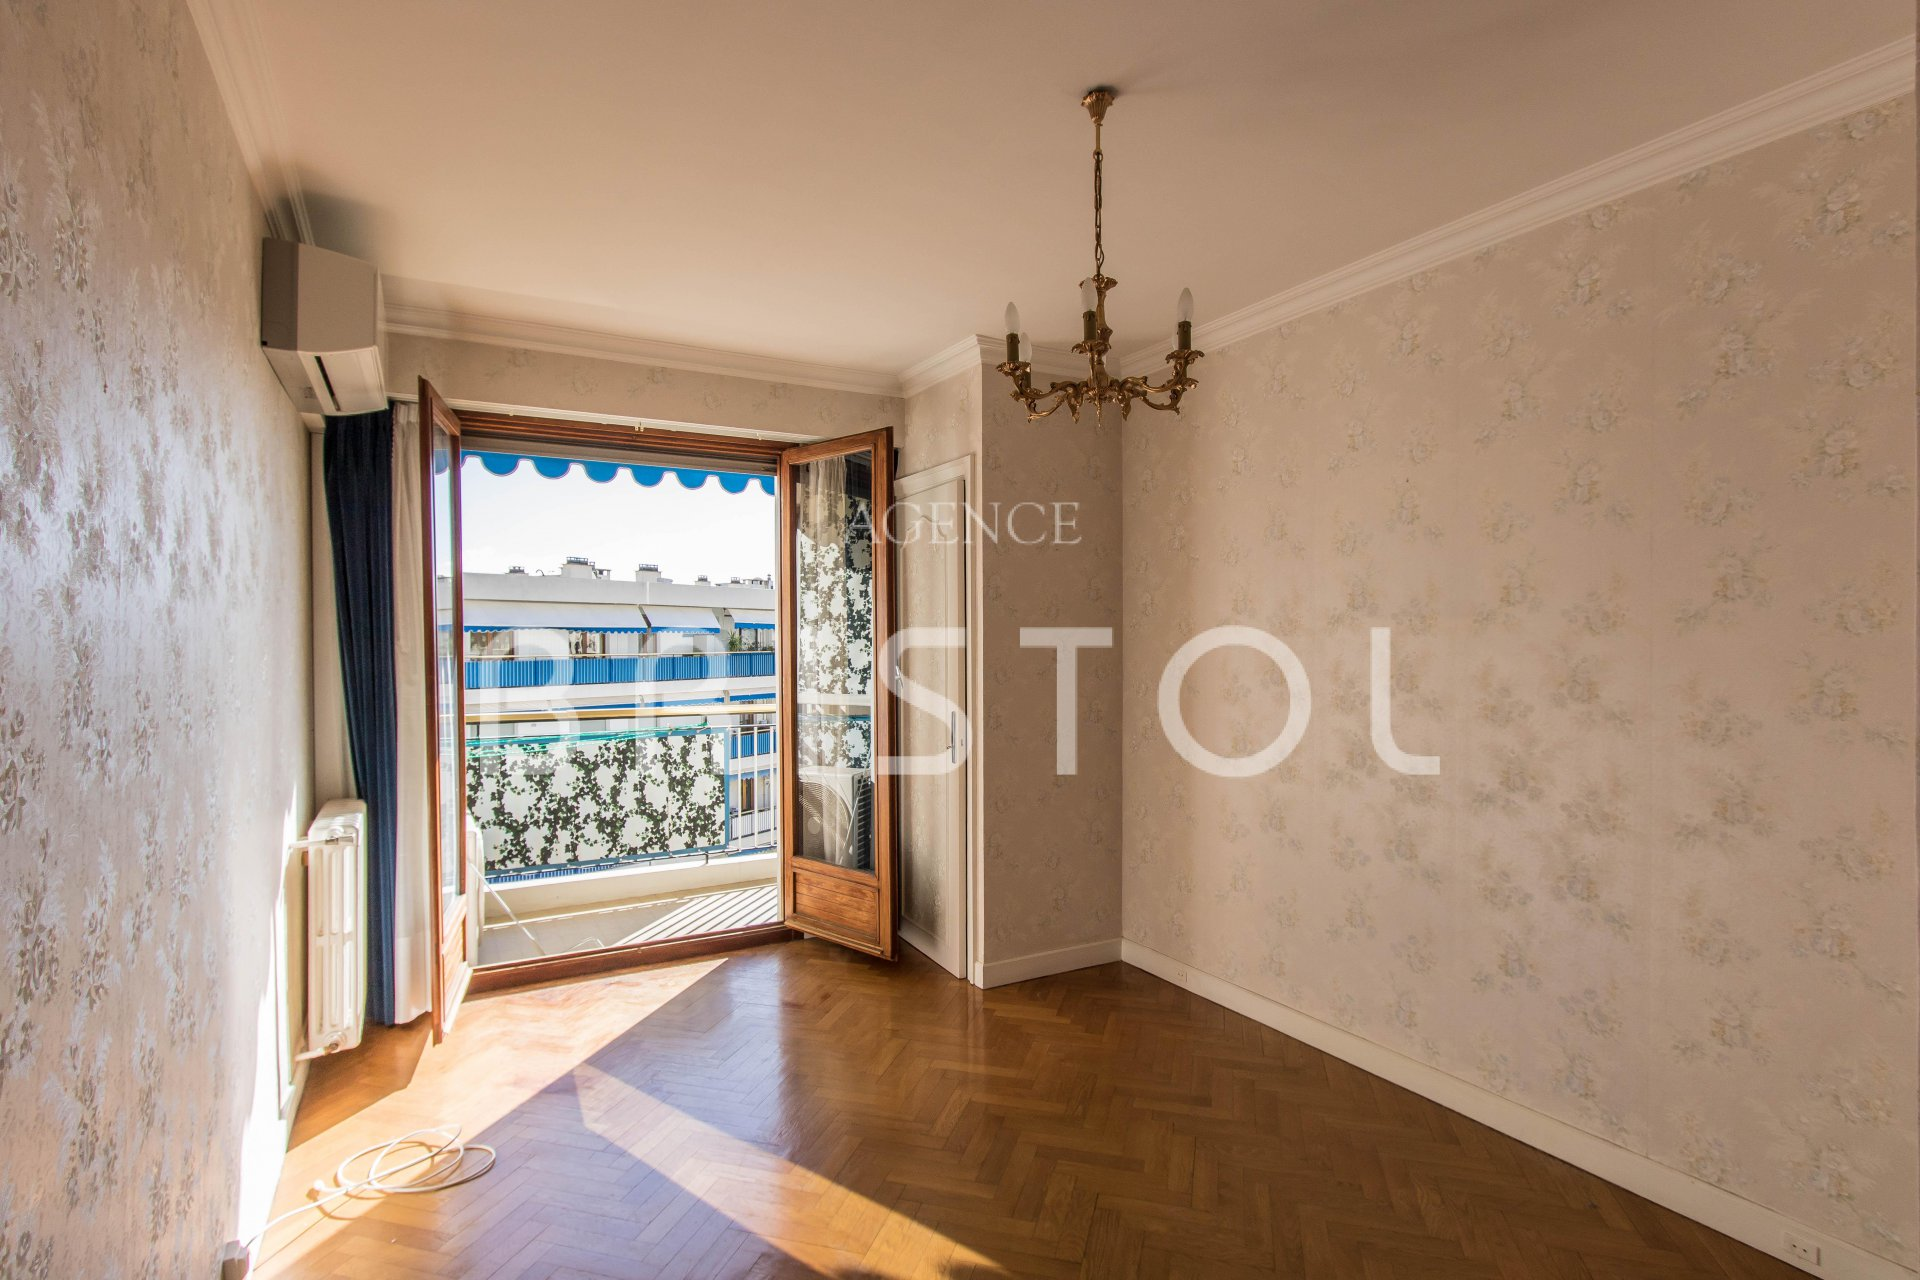 Apartment 1 bedroom for sale in Beaulieu sur Mer